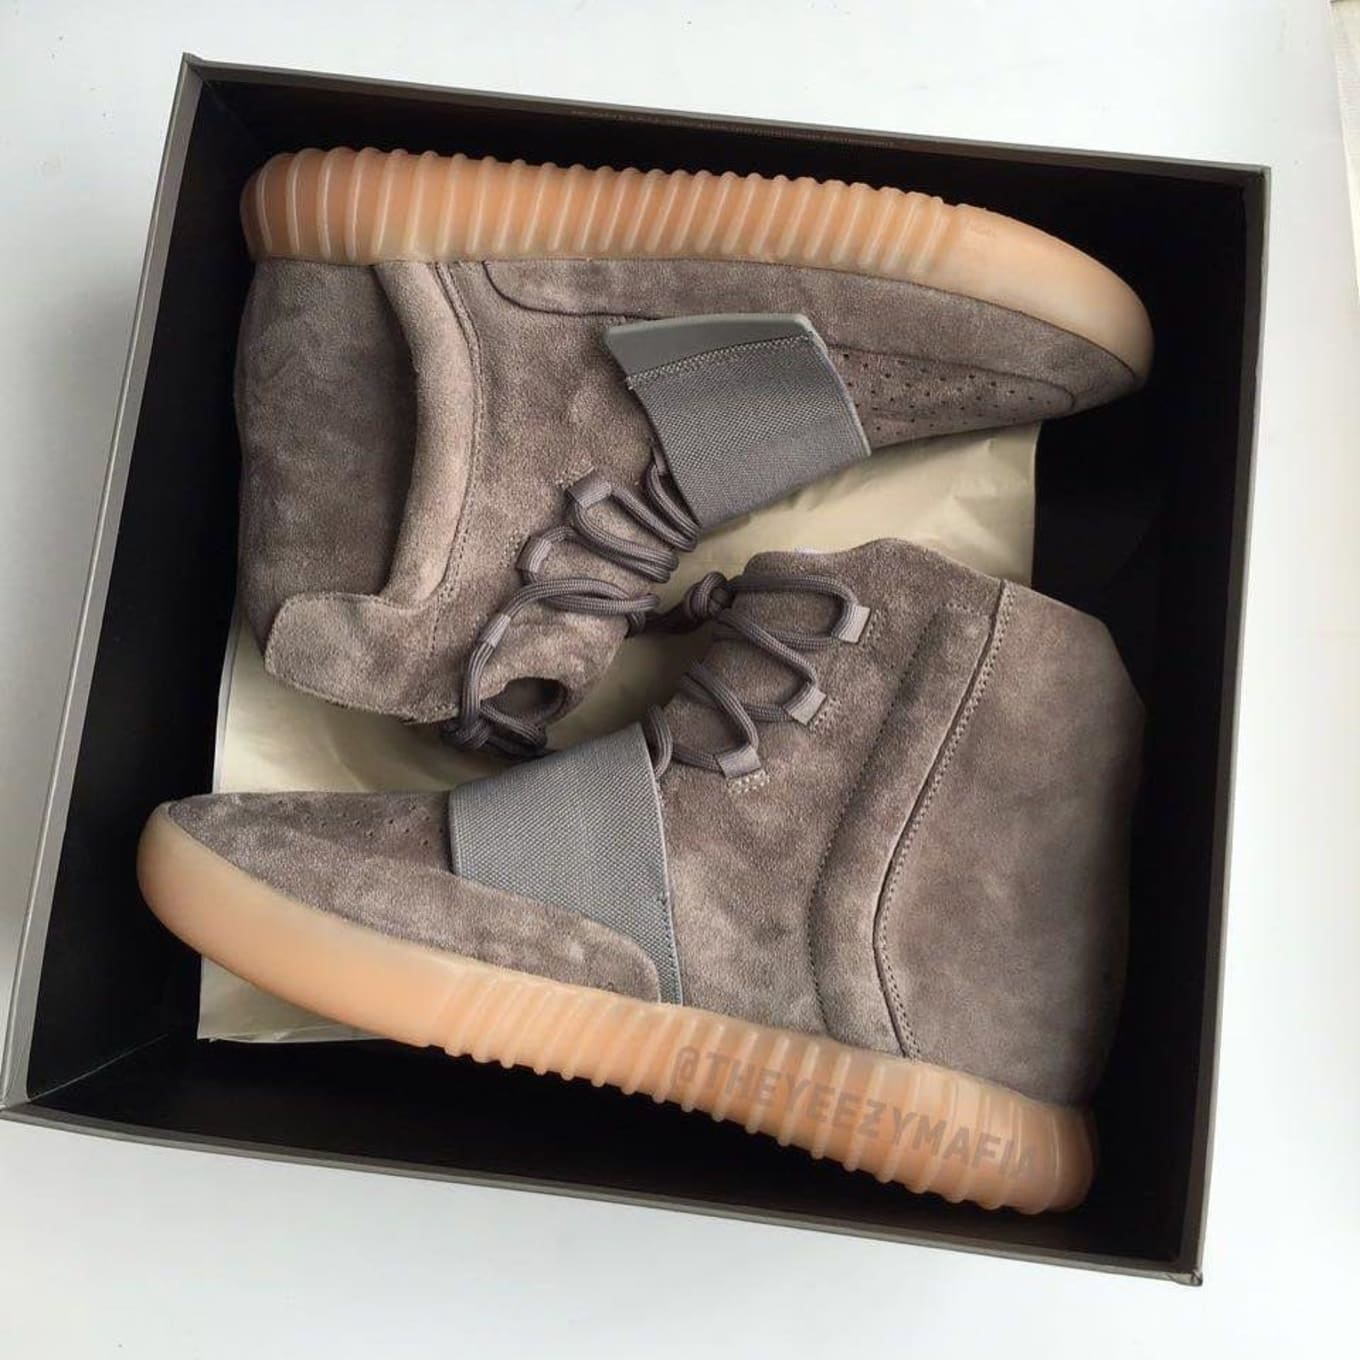 83e010814e9e7 New Adidas Yeezy 750 Boost Reportedly Releasing Next Month. The